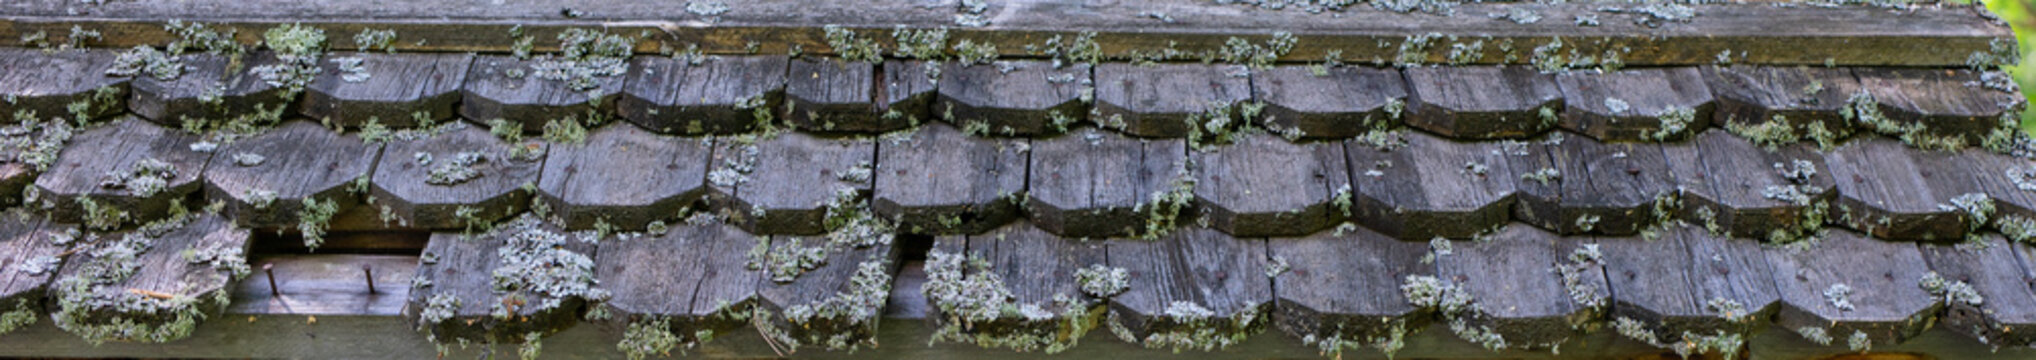 Old wooden roof texture. Detail of shingled roof of old wood-frame building